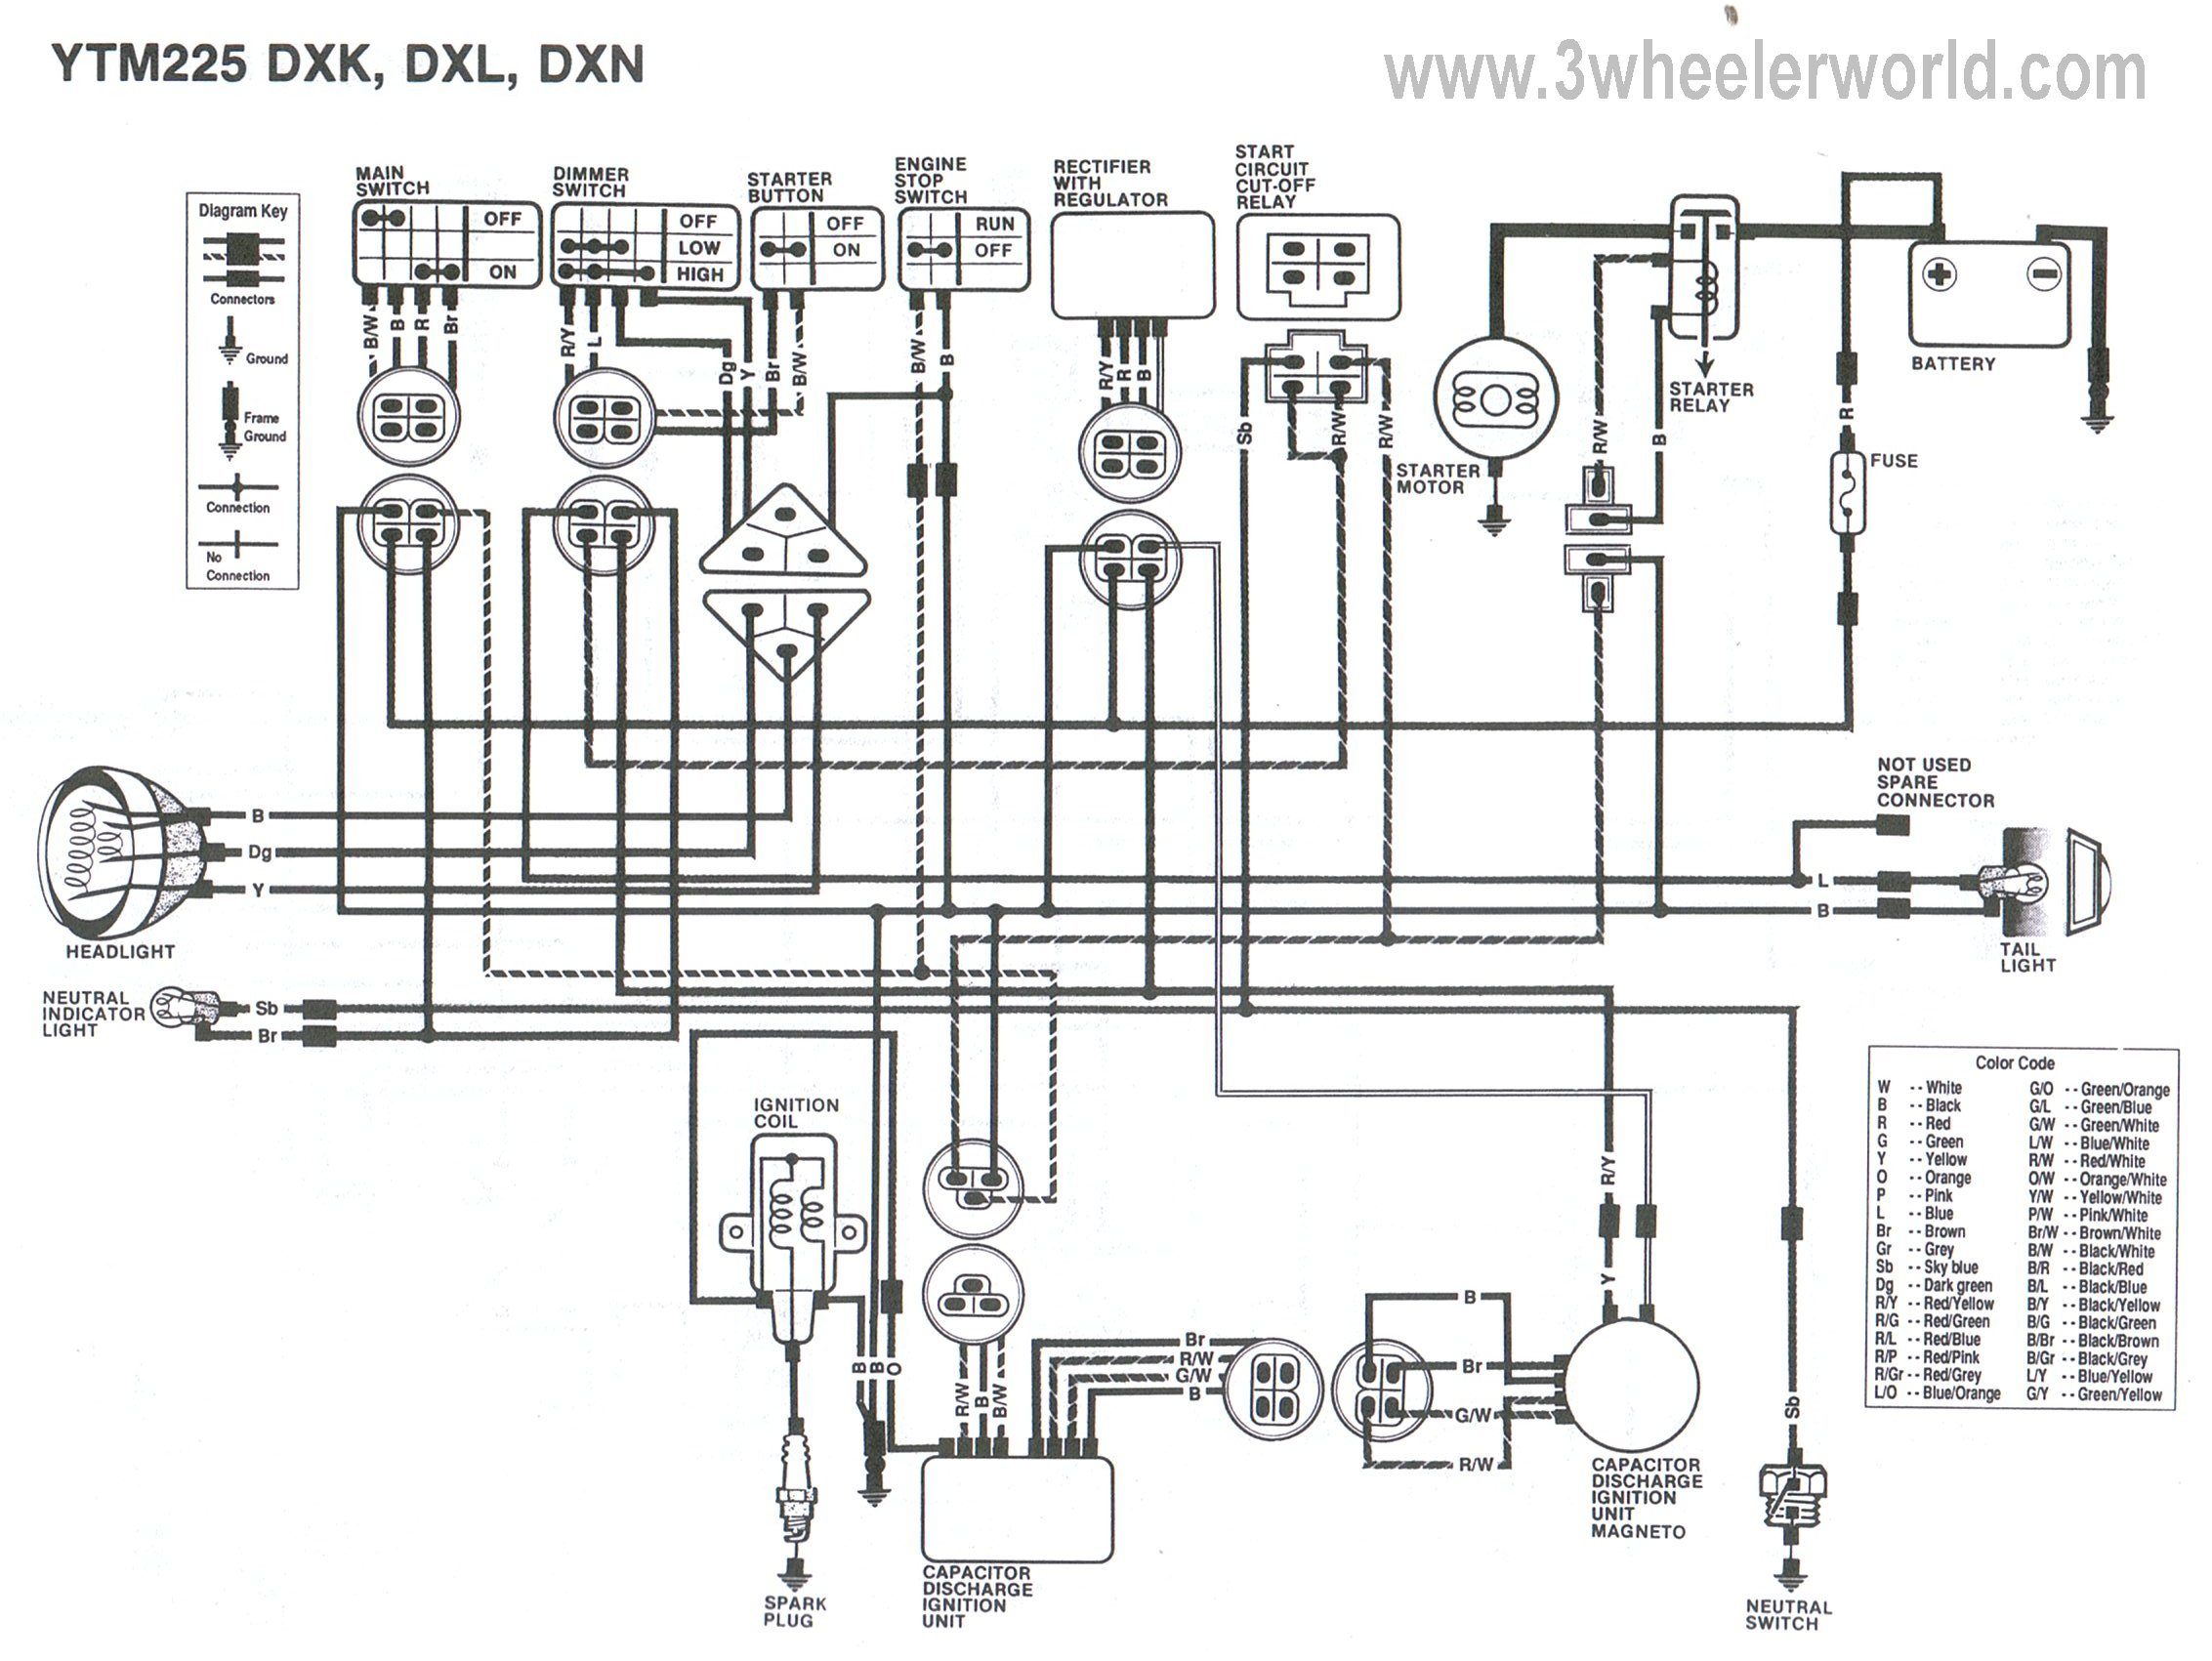 YTM225DXKDXLDXN yamaha wiring diagram wiring diagram and schematic design gl1200 wiring diagram at alyssarenee.co